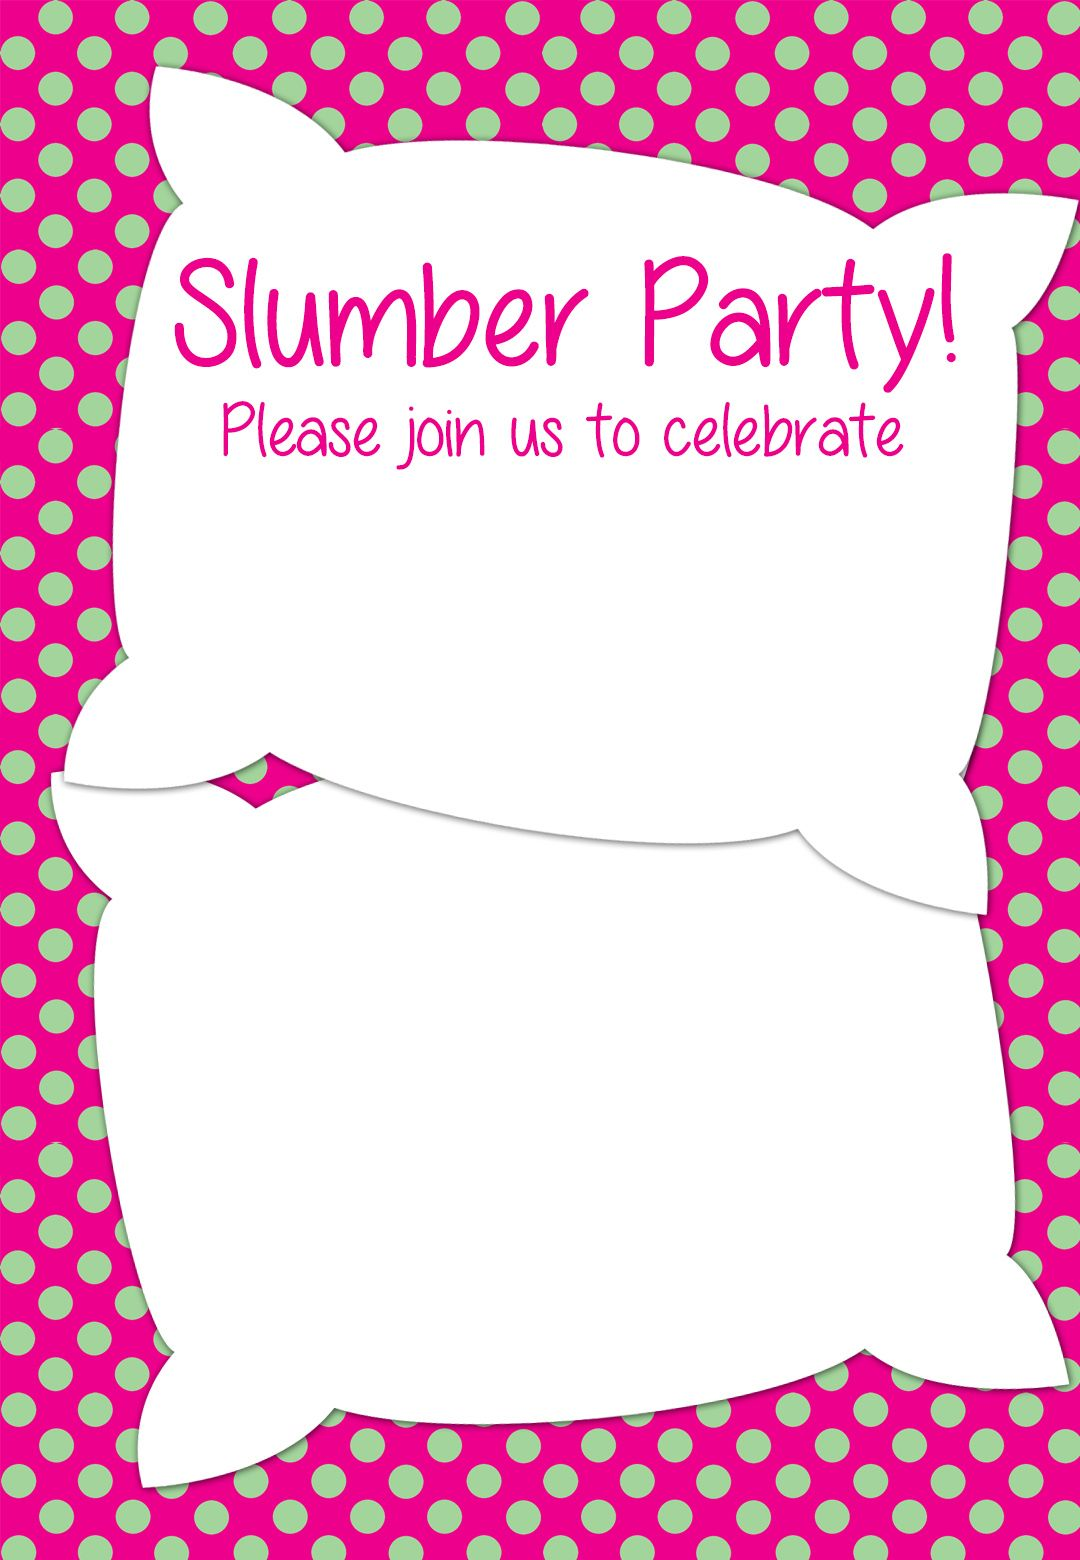 Free Printable Slumber Party Invitation Slumber Party